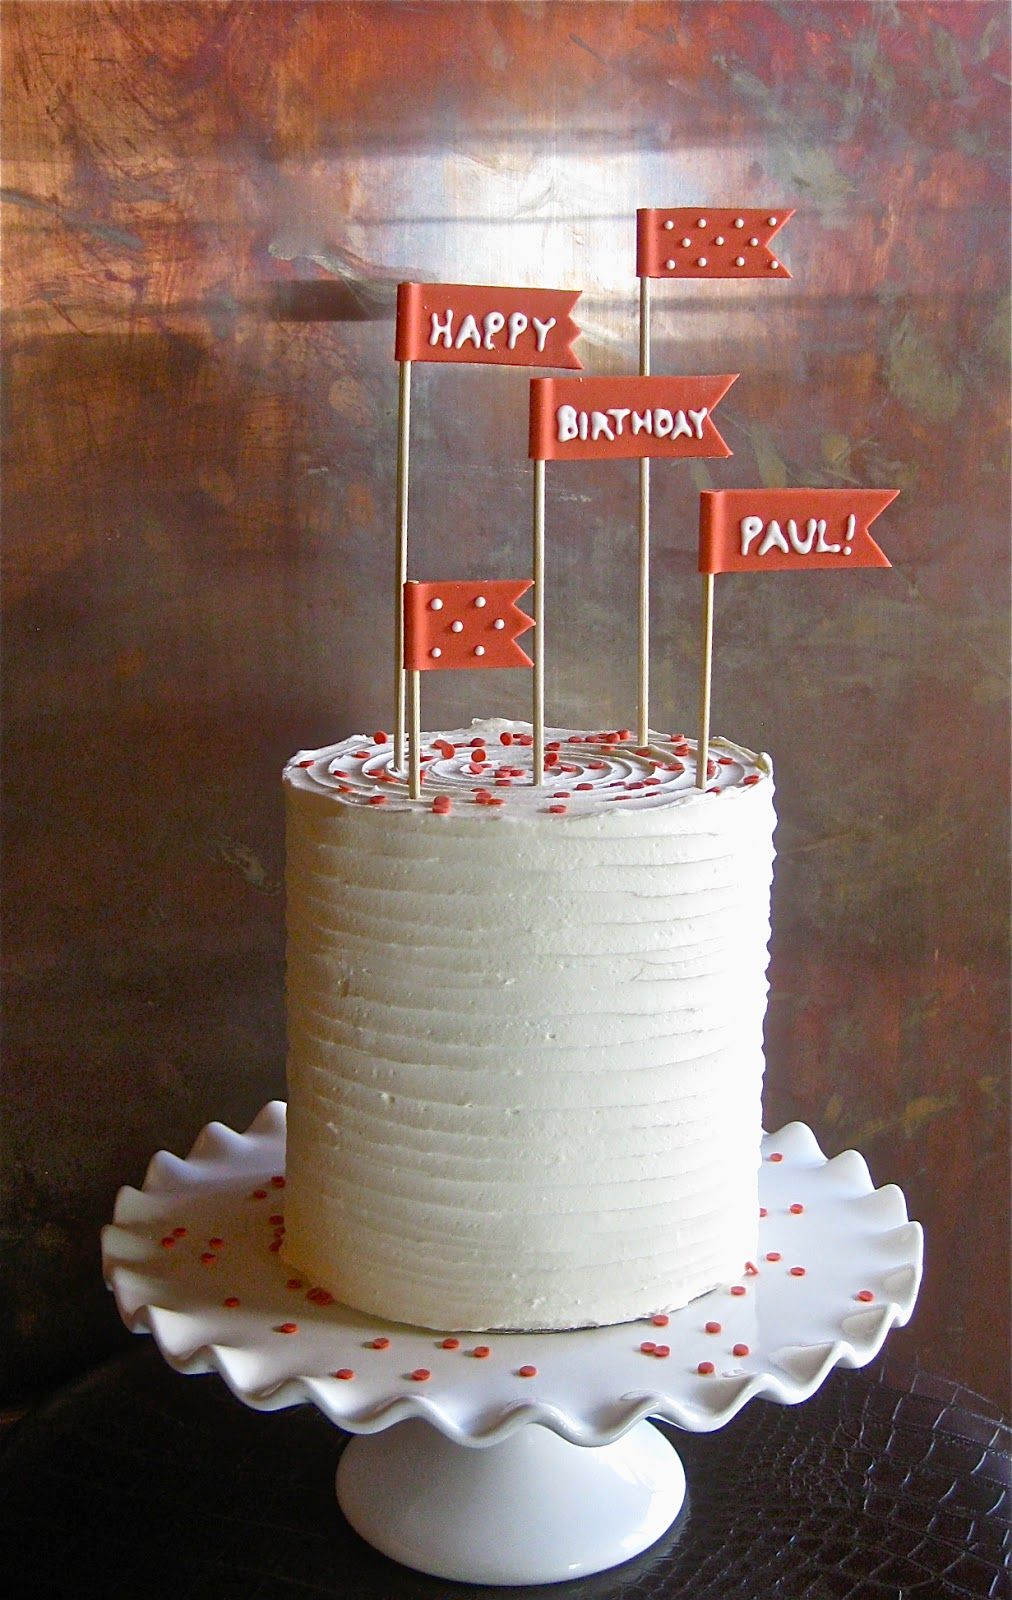 The Cake Faith Got By Mistake That Her Dad Was Supposed To Get Oh